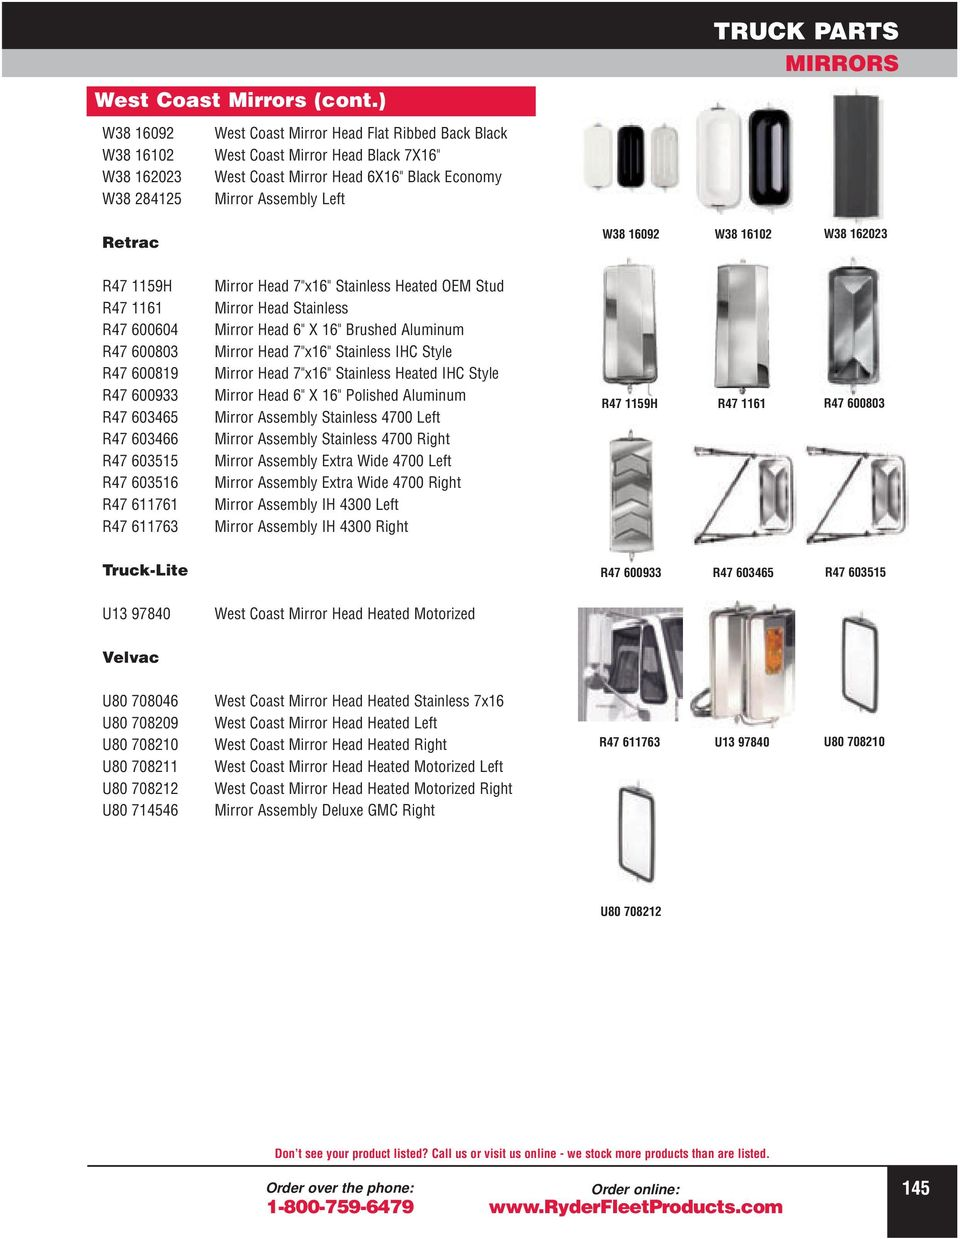 Truck Parts Mirrors Convex Grote Pdf West Coast Heated Mirror Wiring Diagrams W38 16102 162023 R47 1159h 1161 600604 600803 600819 600933